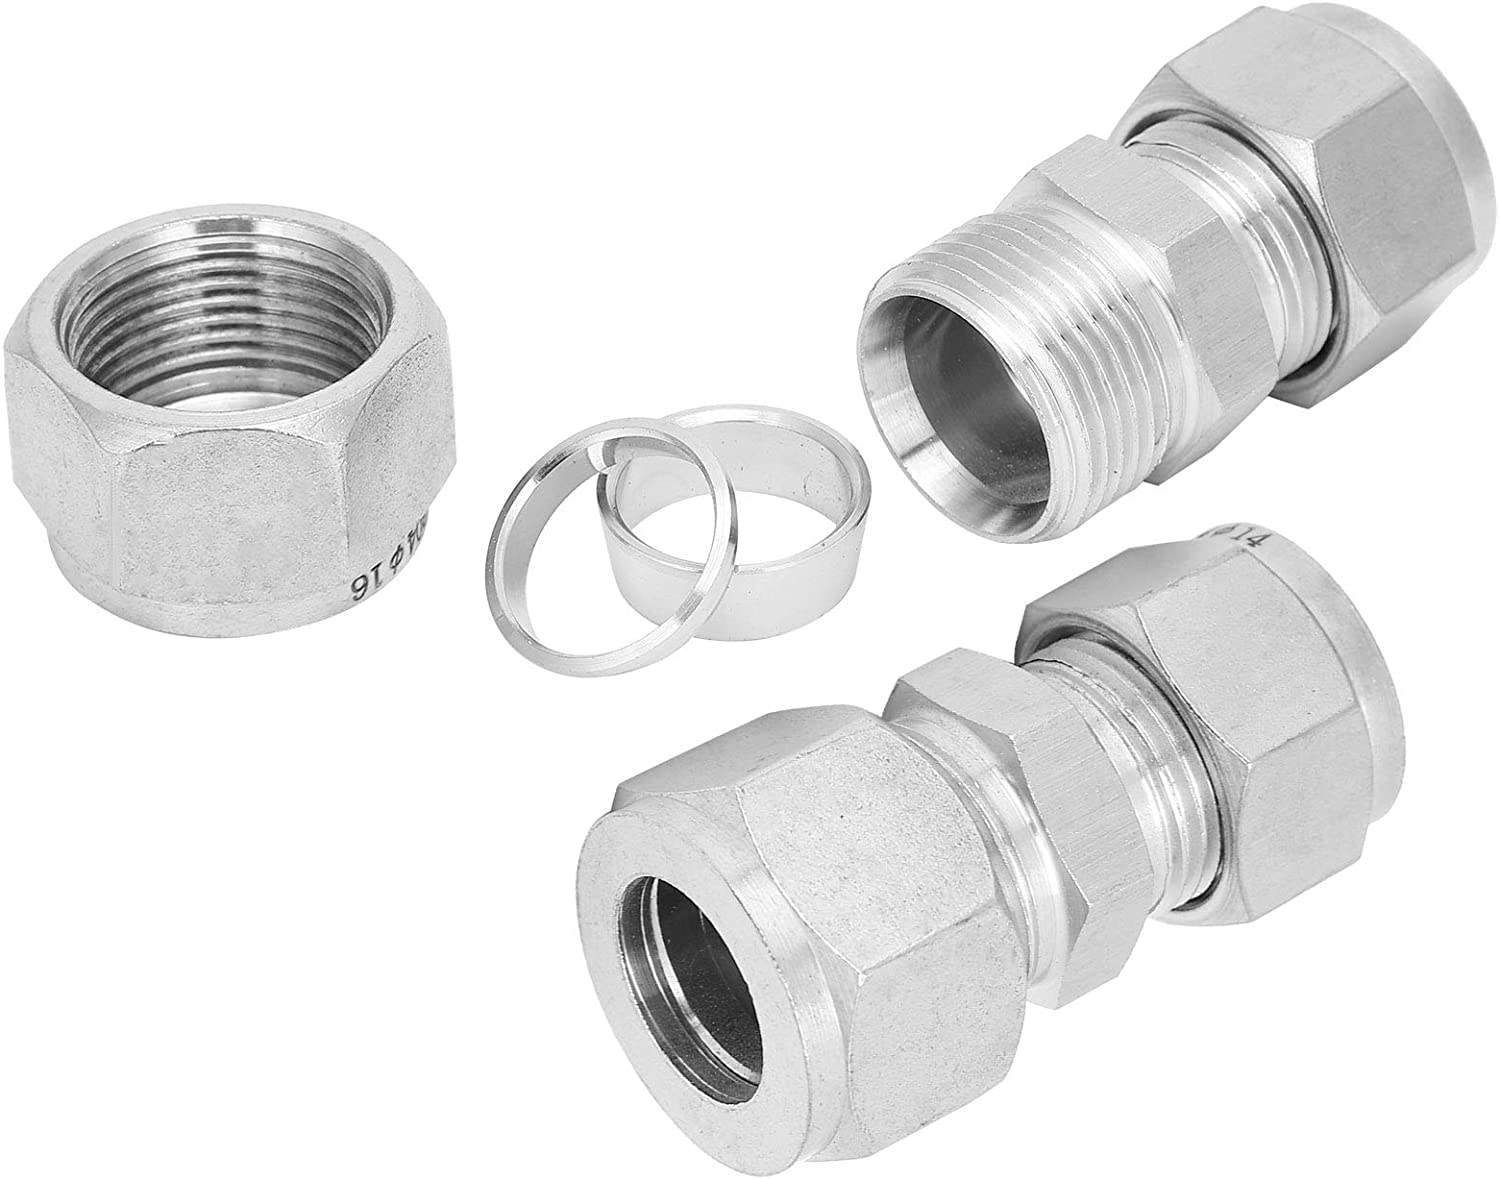 Ф14-Ф16 2Pcs Compression Tube Reducer Adapter Straight Pipe Fitting 304 Stainless Steel Double‑Ferrule Reducer Union